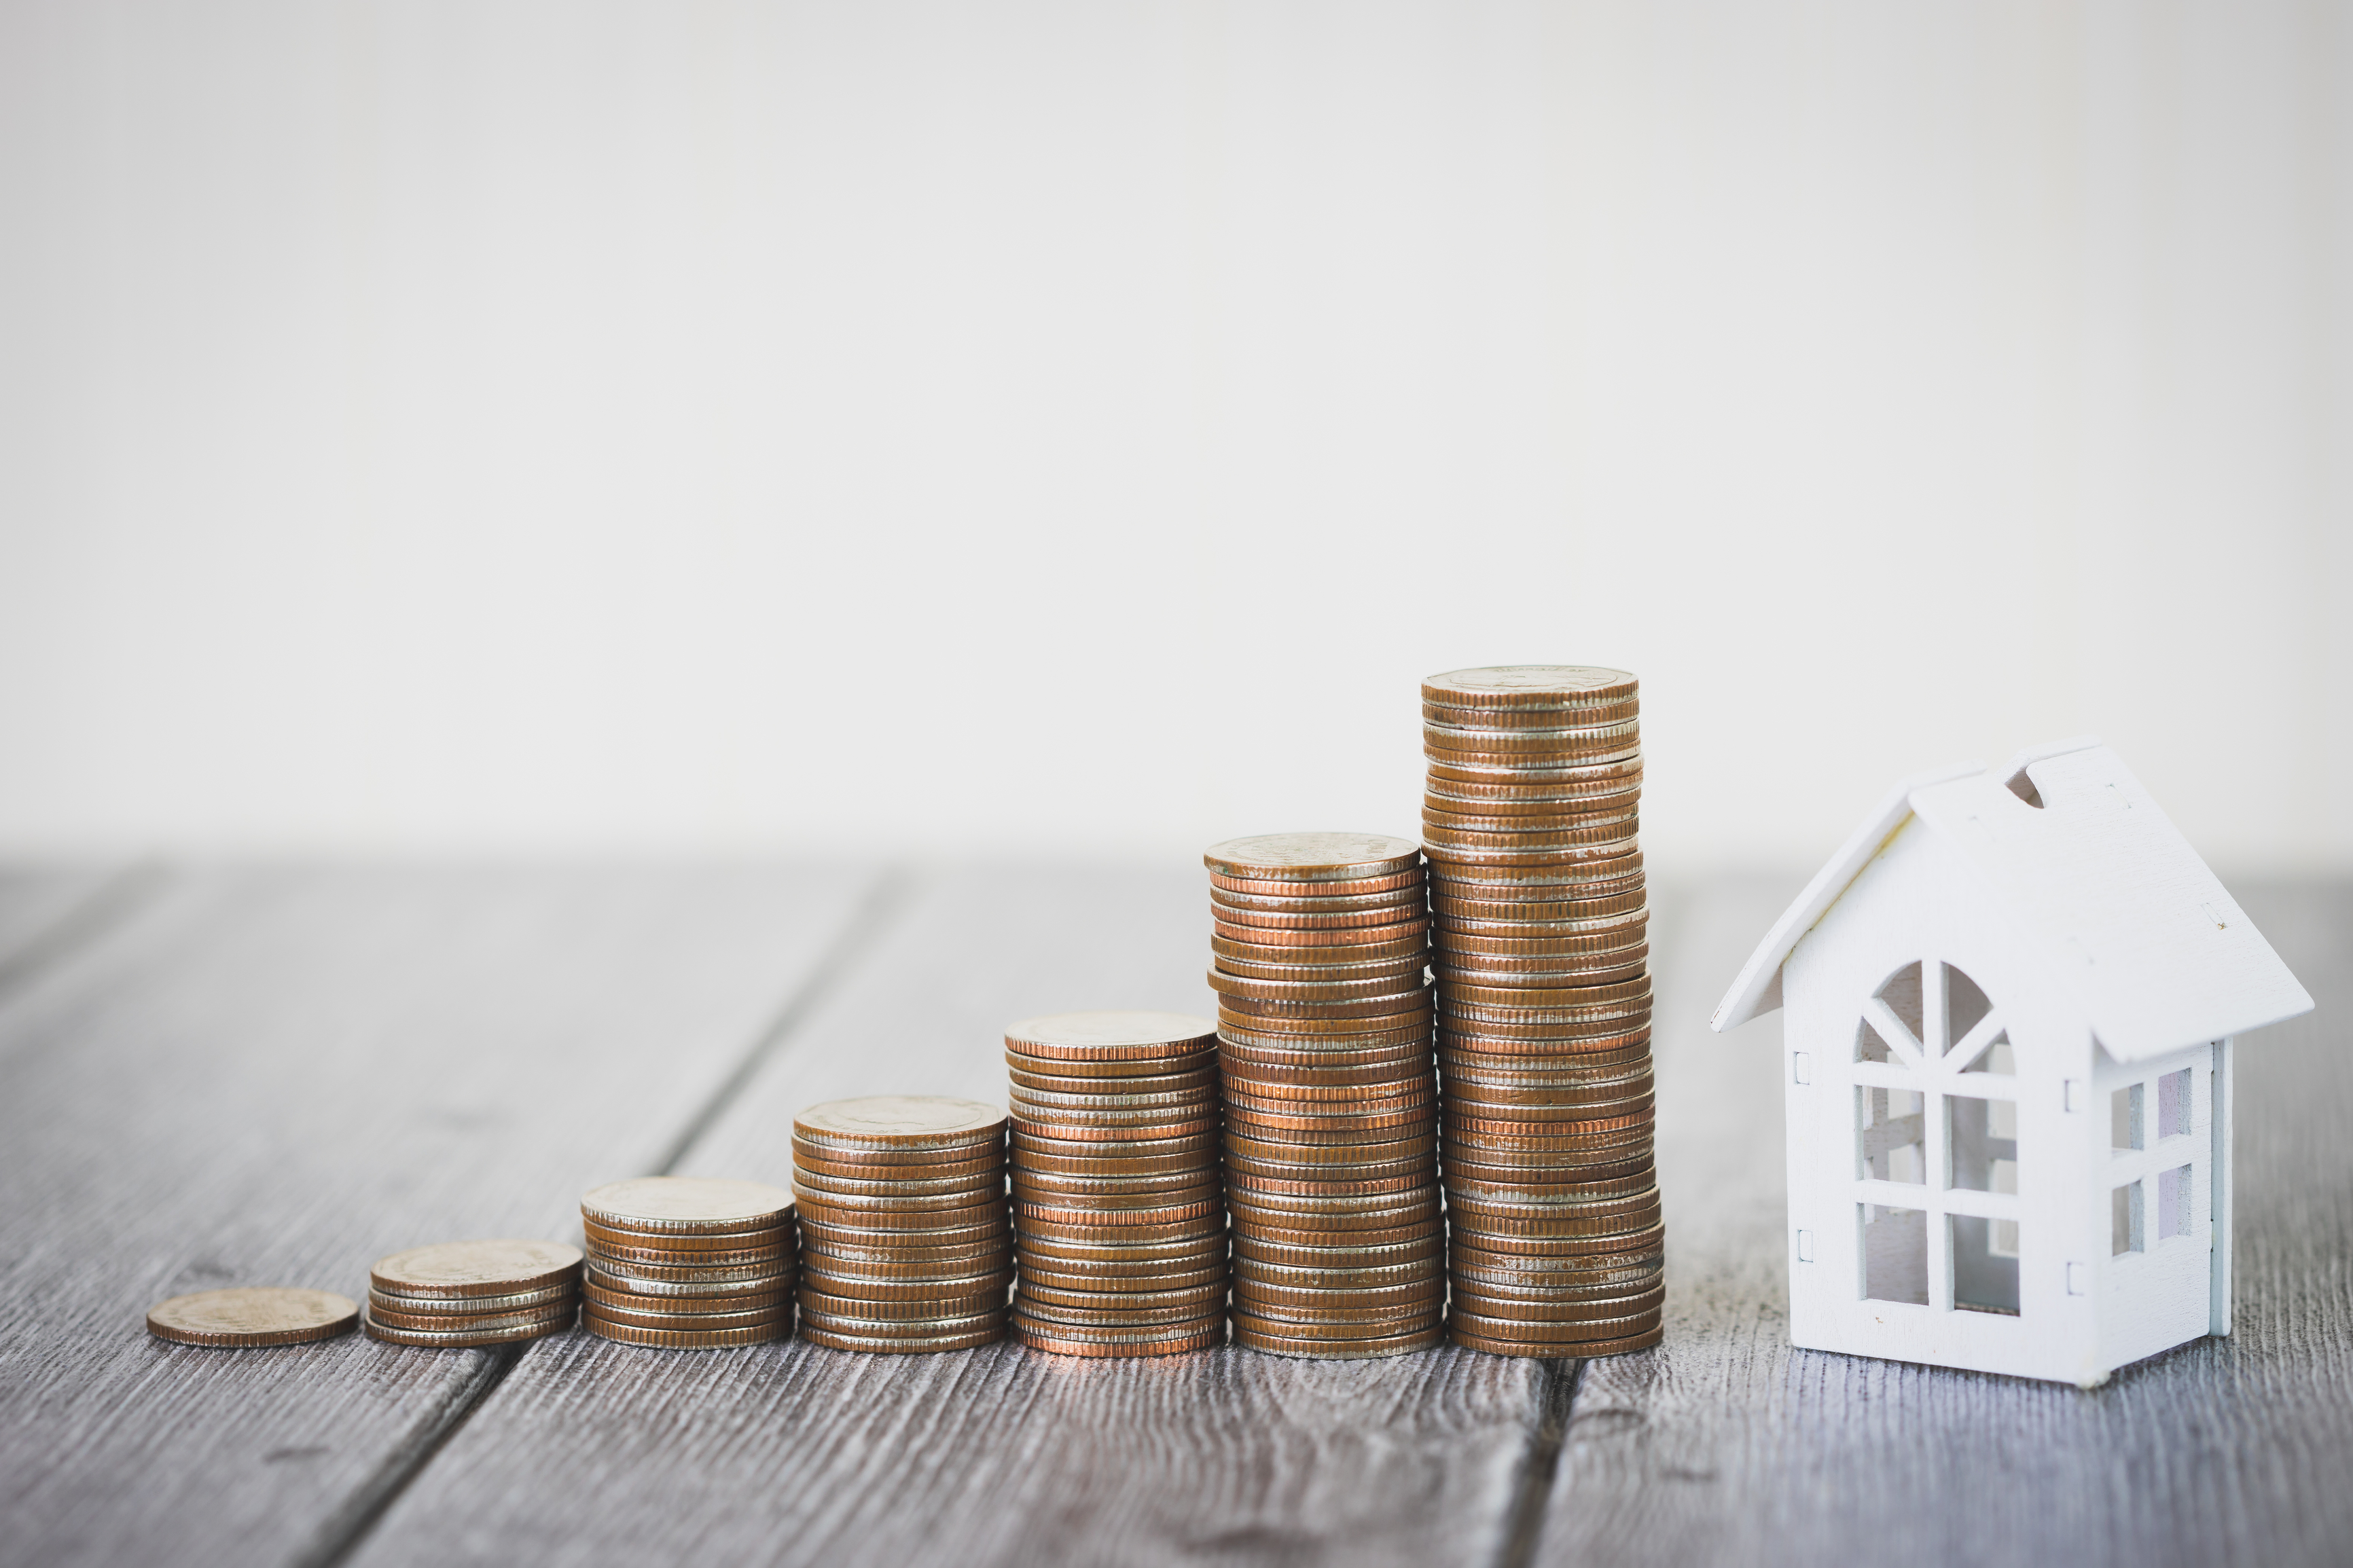 Money of coin stack step up growing growth with model white hous